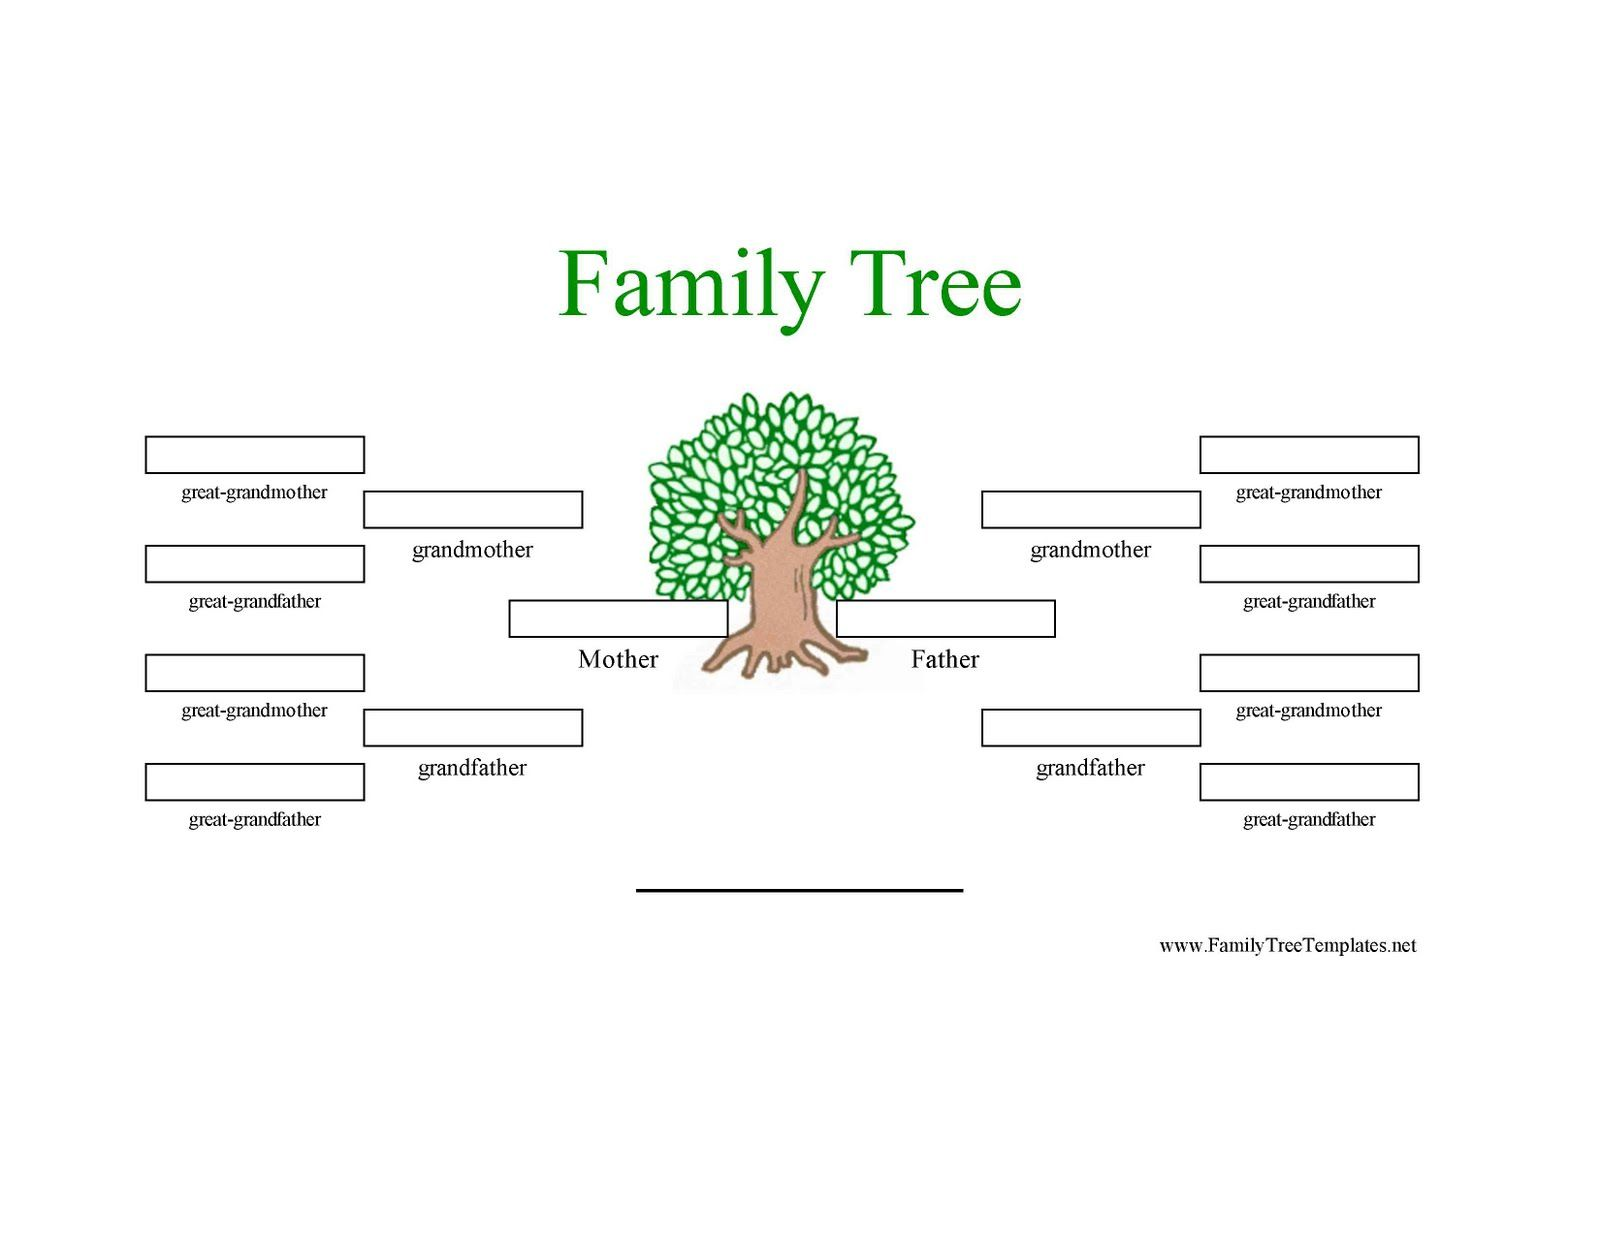 12 Generation Family Tree Sample